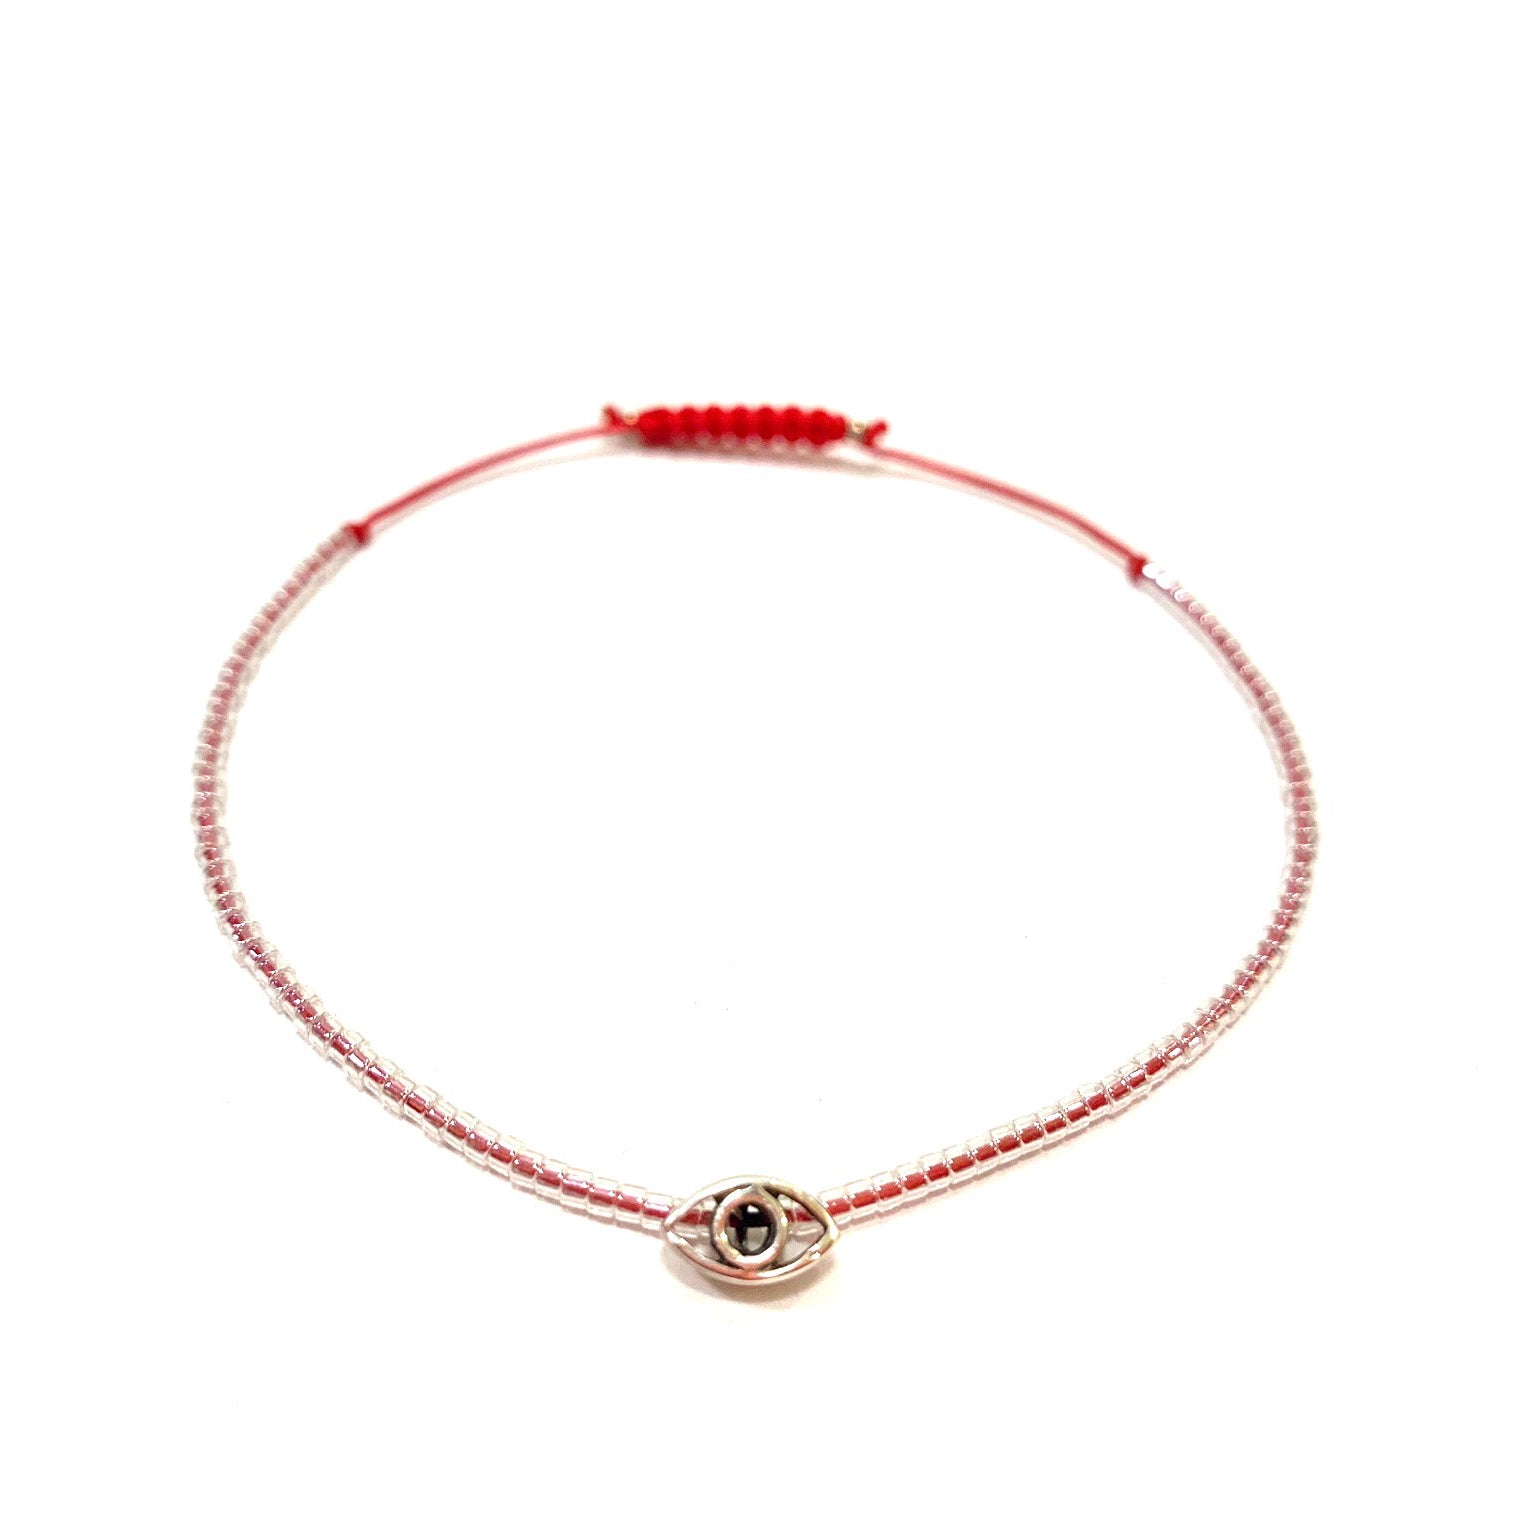 Tiny Clear Miyuki beads with Red String and Sterling Silver Evil Eye